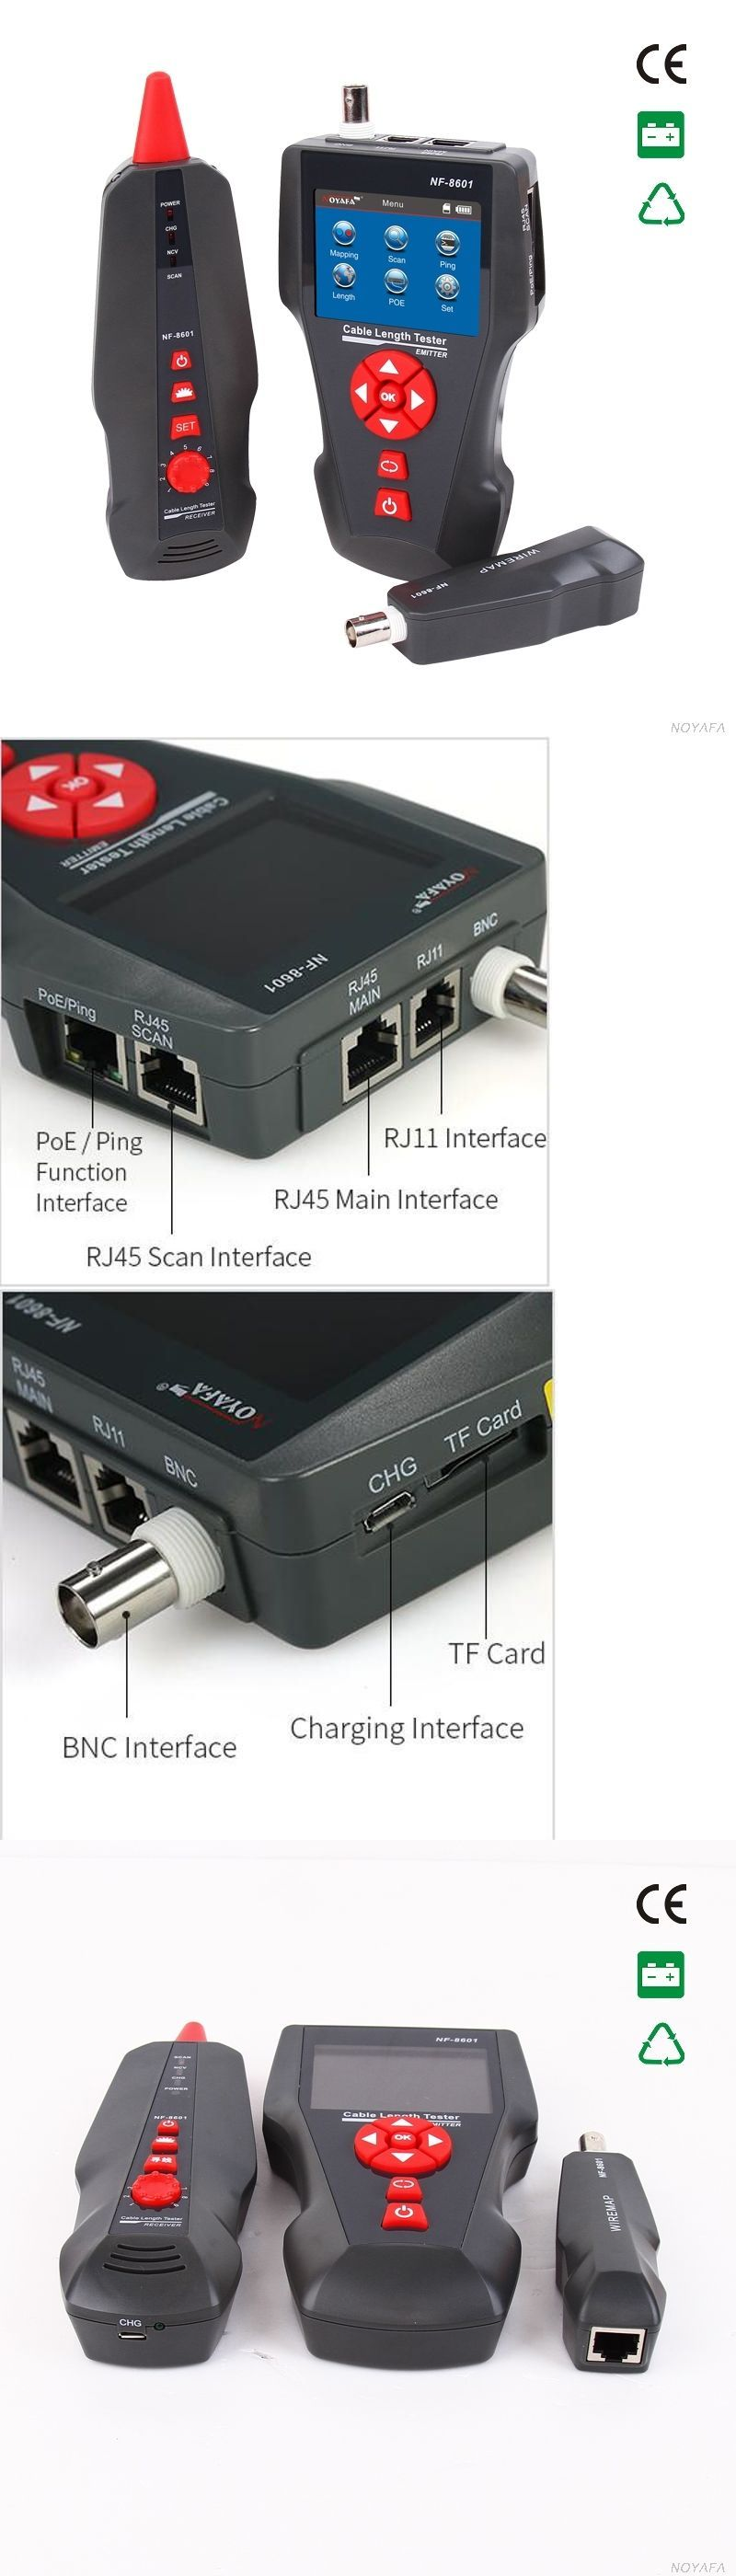 Details about Network Wire Tracker Cable Tester RJ45 RJ11